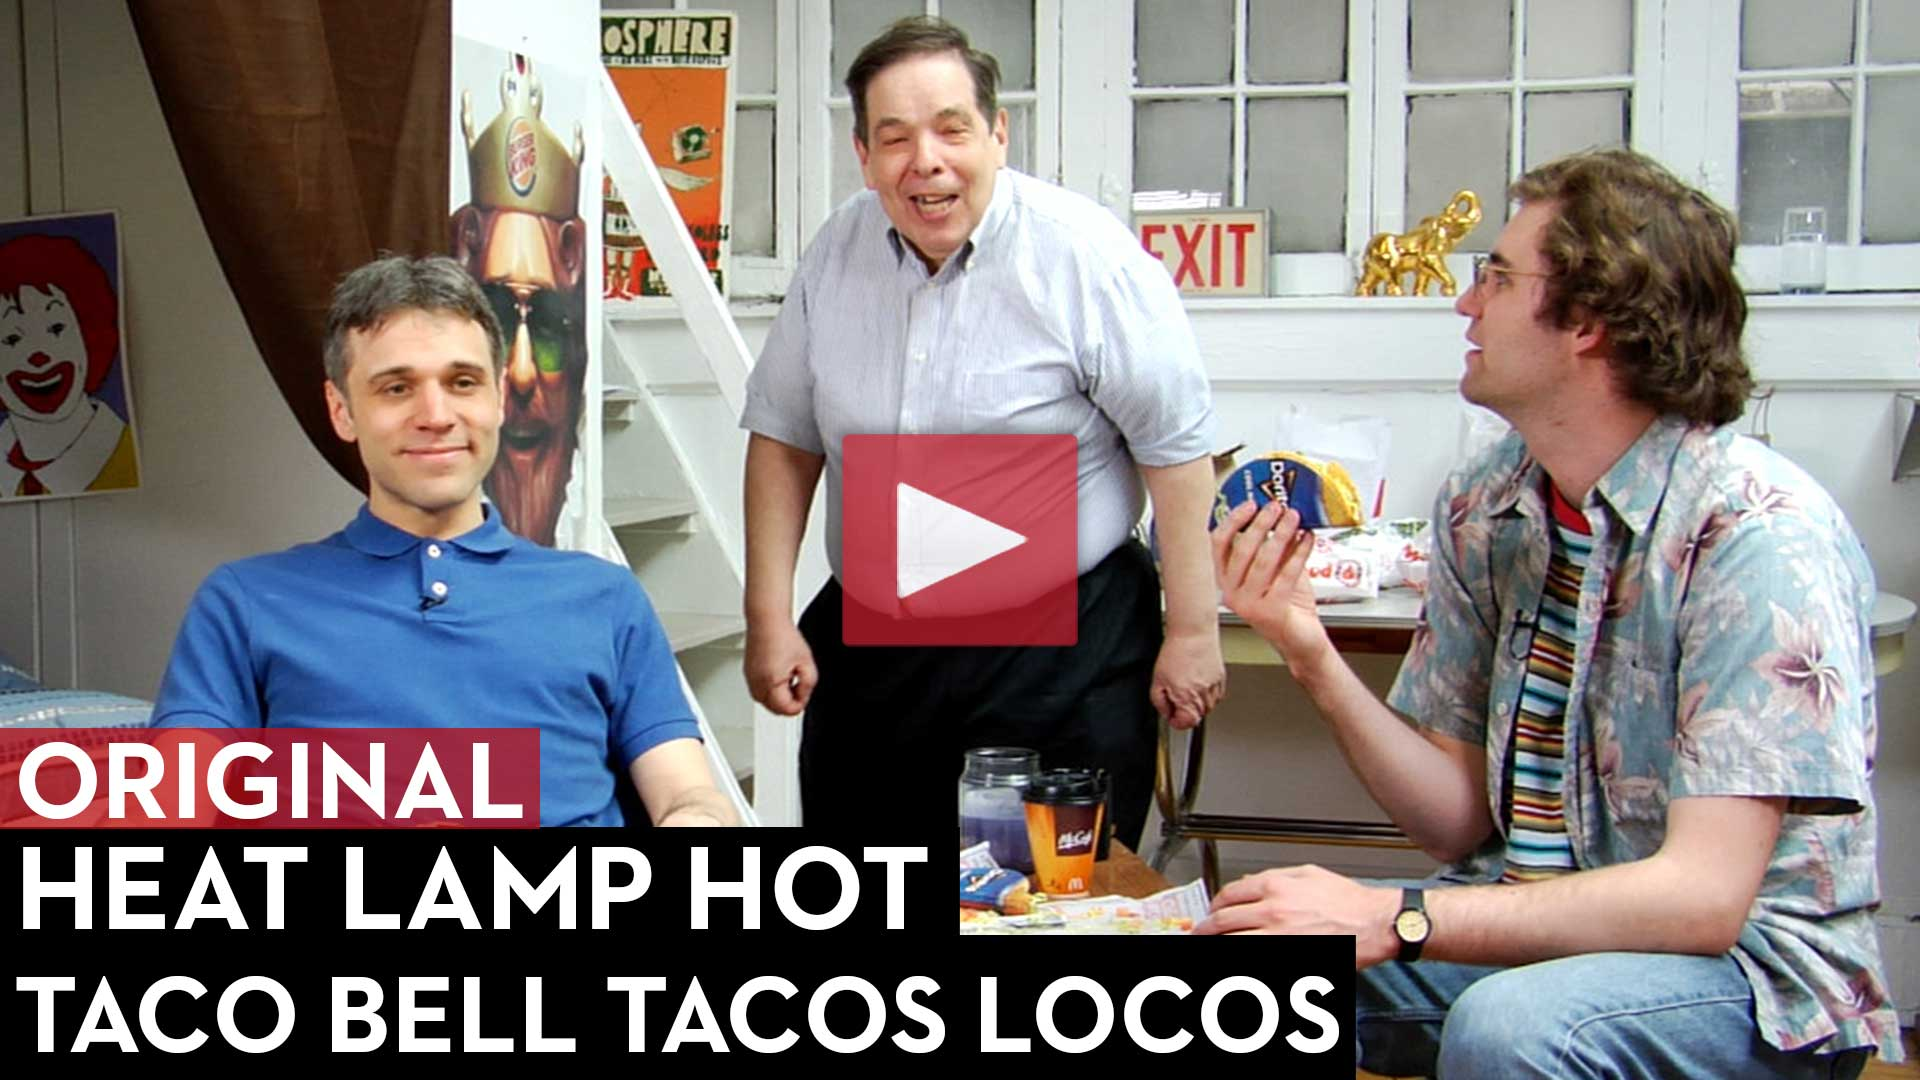 Taco Bell Tacos Locos Review: Heat Lamp Hot Episode 5